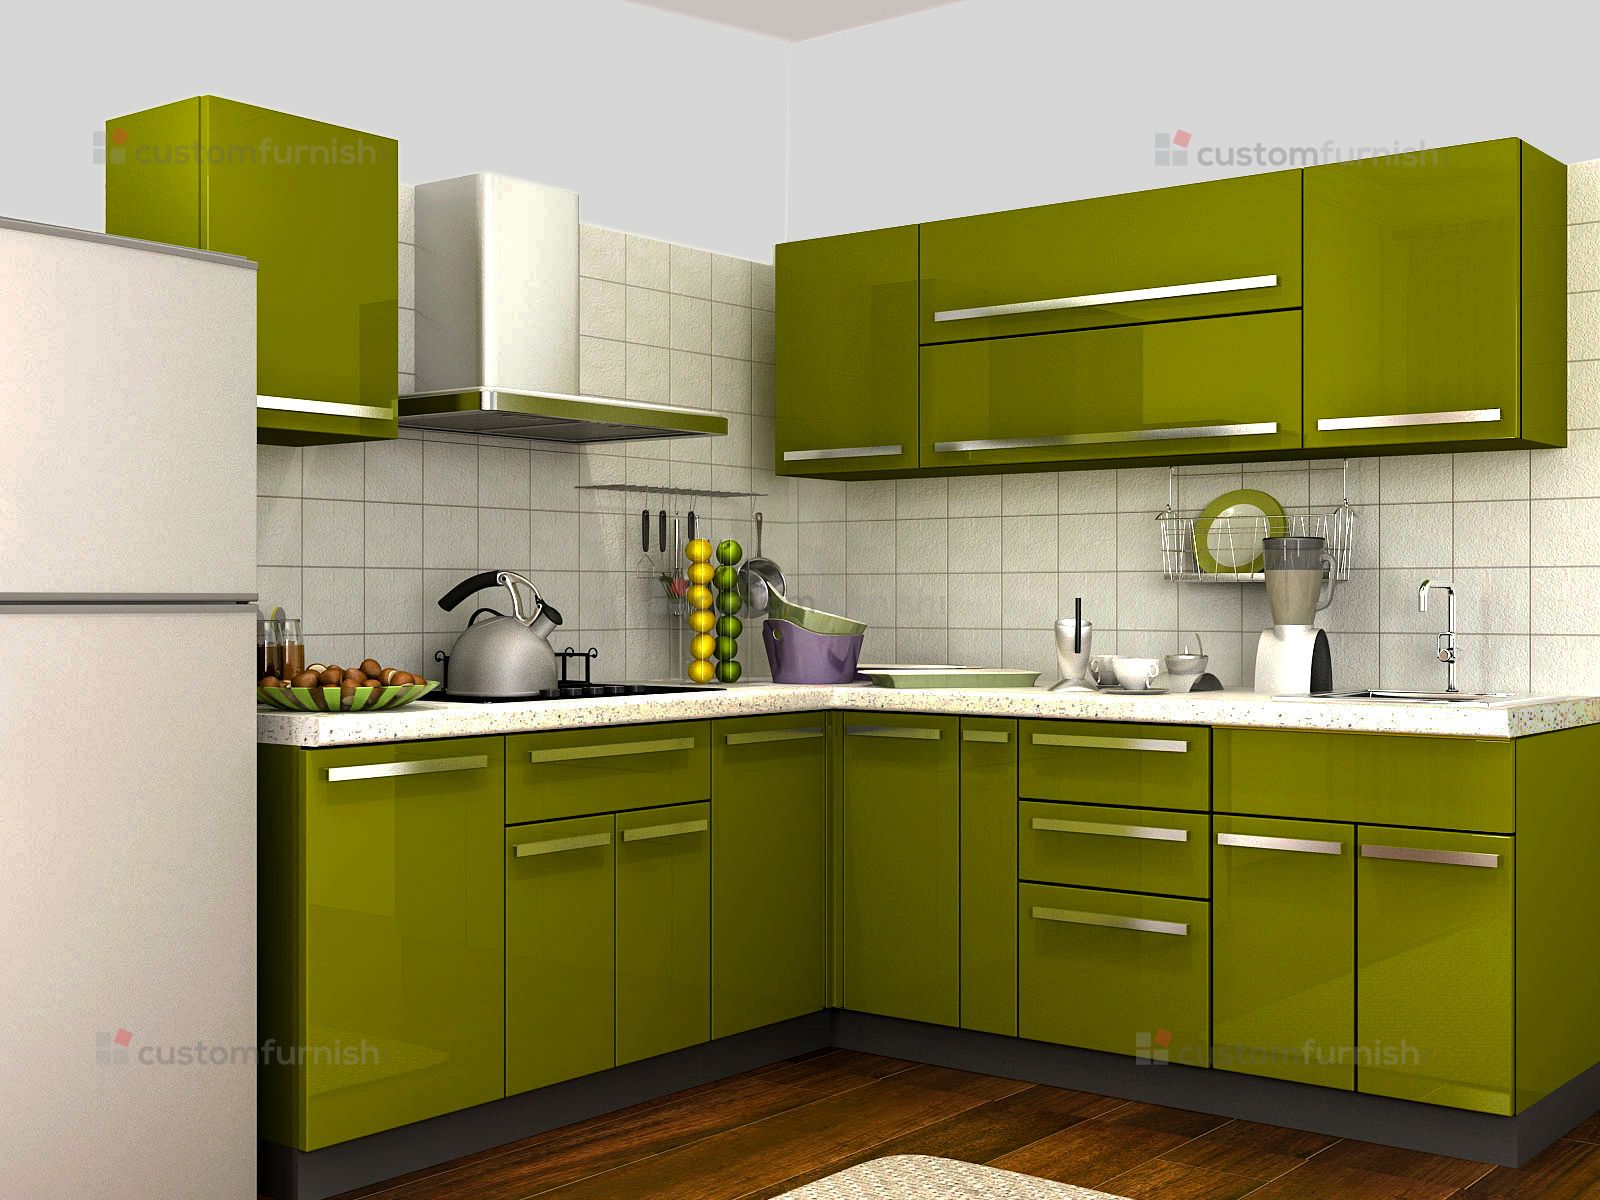 More Ideas Below Kitchenremodel Kitchenideas Indian Modular Kitchen Ideas Small Modular Ki Kitchen Furniture Design Kitchen Modular L Shaped Modular Kitchen